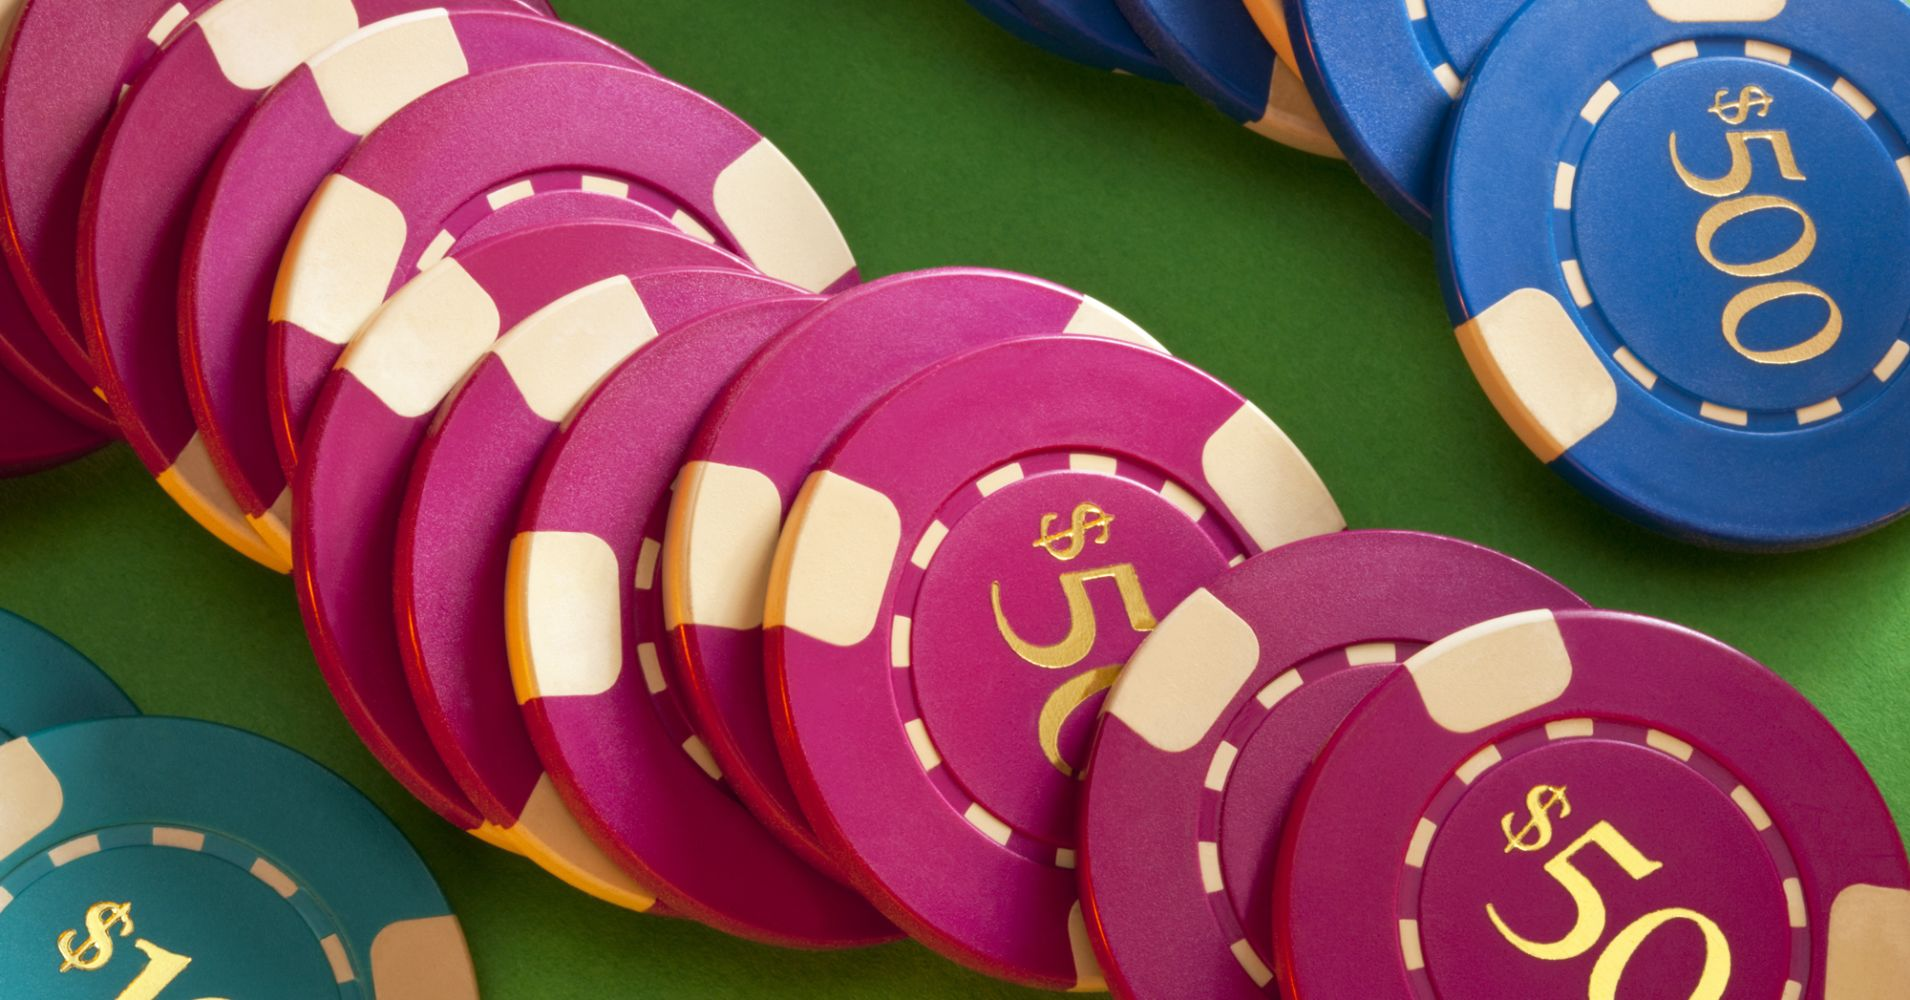 Live Dealer Games Starting At 2 Casinos In Central Indiana Wane 15